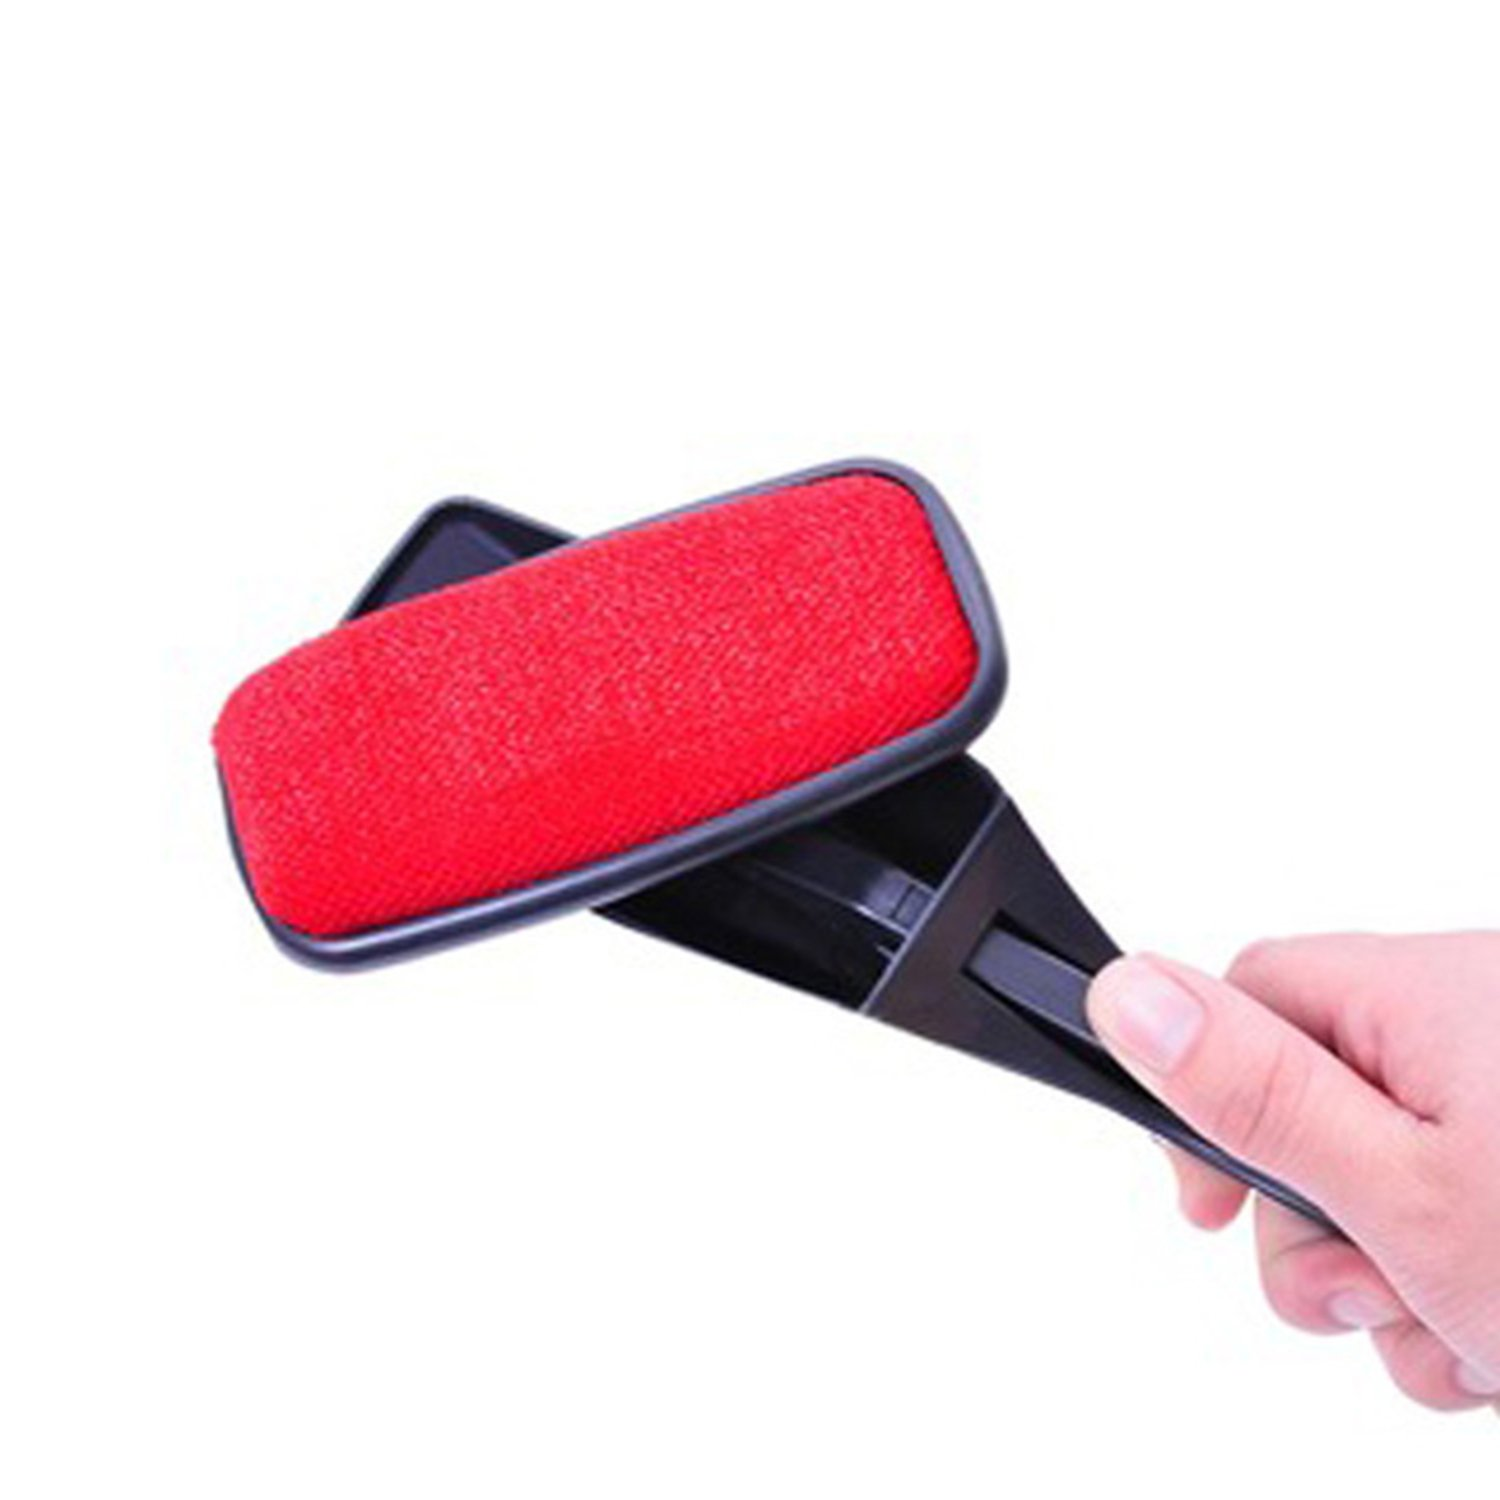 Magic clothes Brush by 151 Products LTD